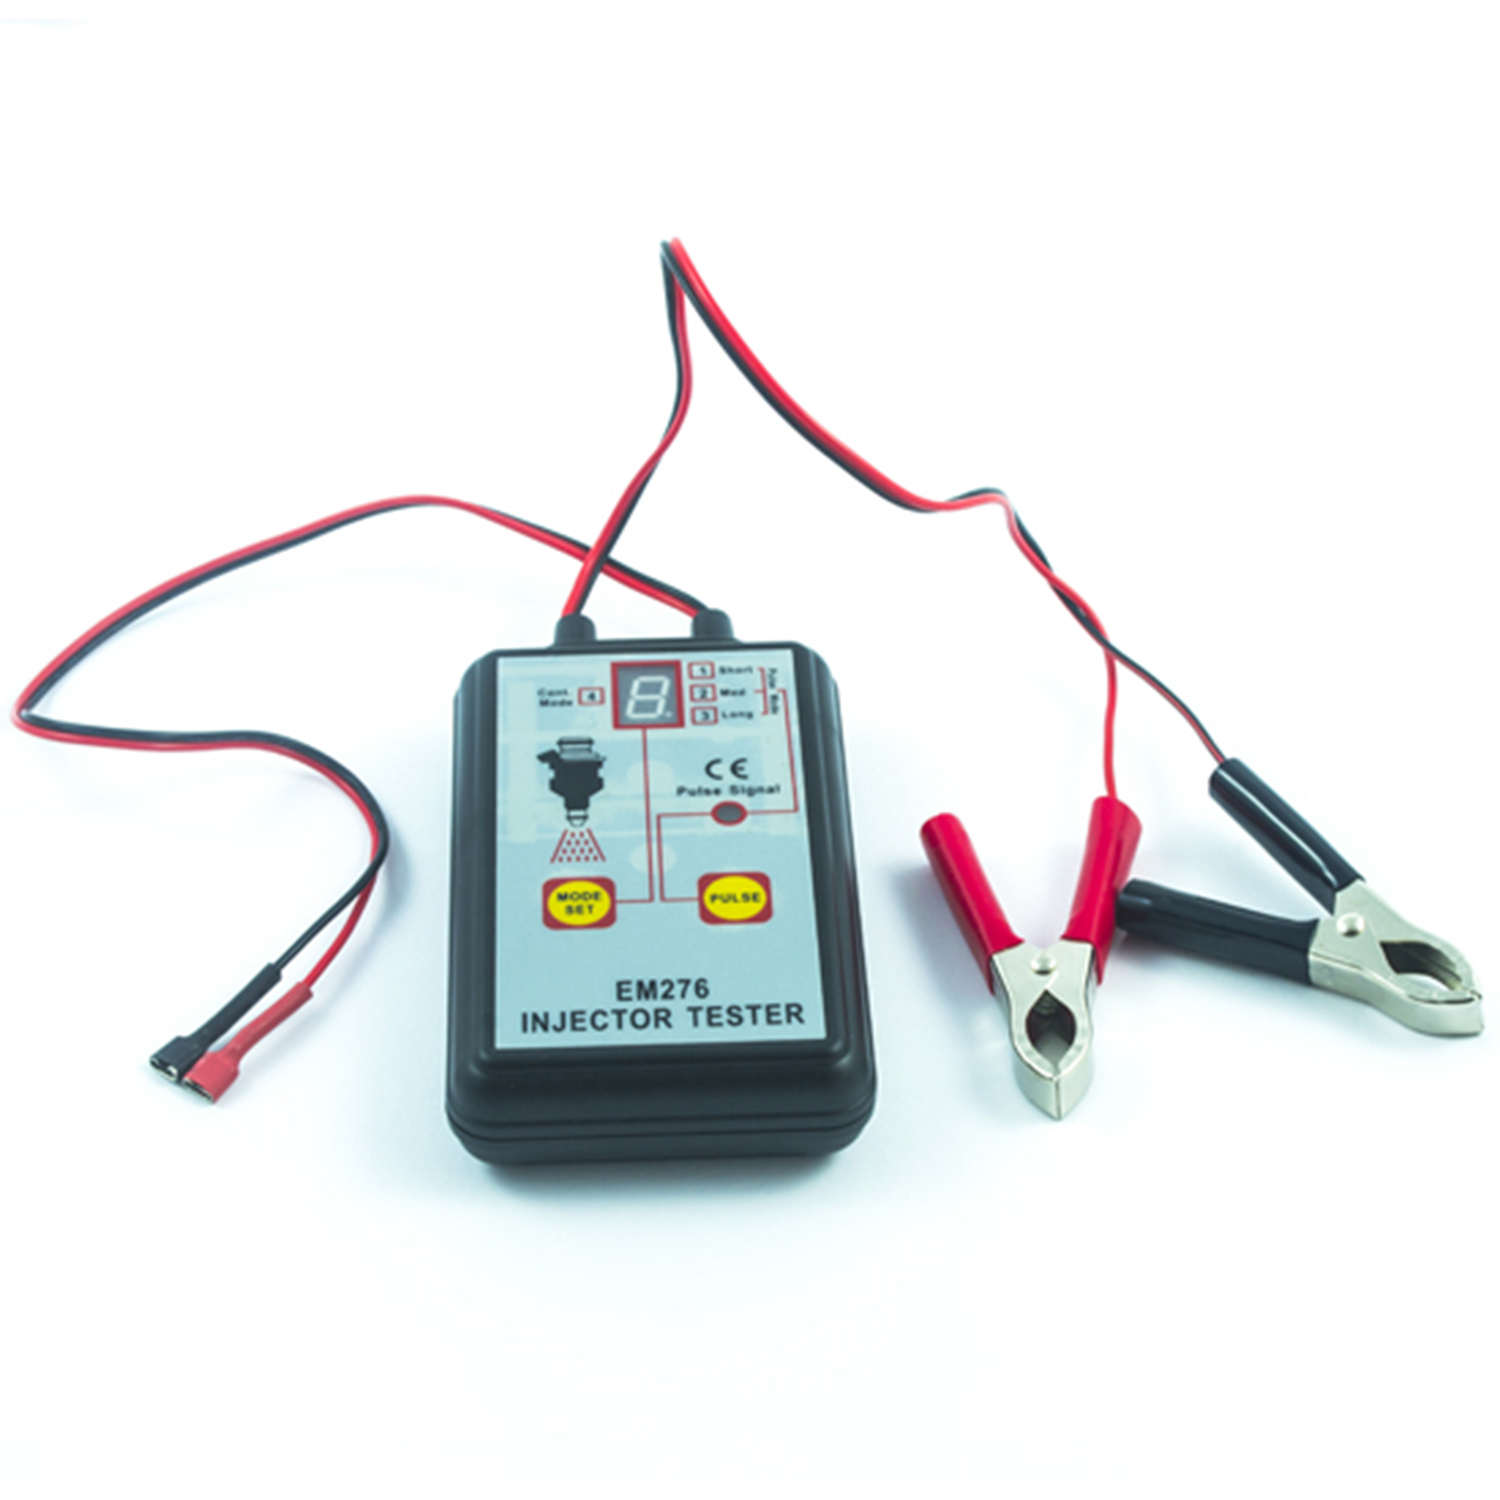 Details about Electronic Fuel System and Fuel Injector Pressure Tester LED  Display